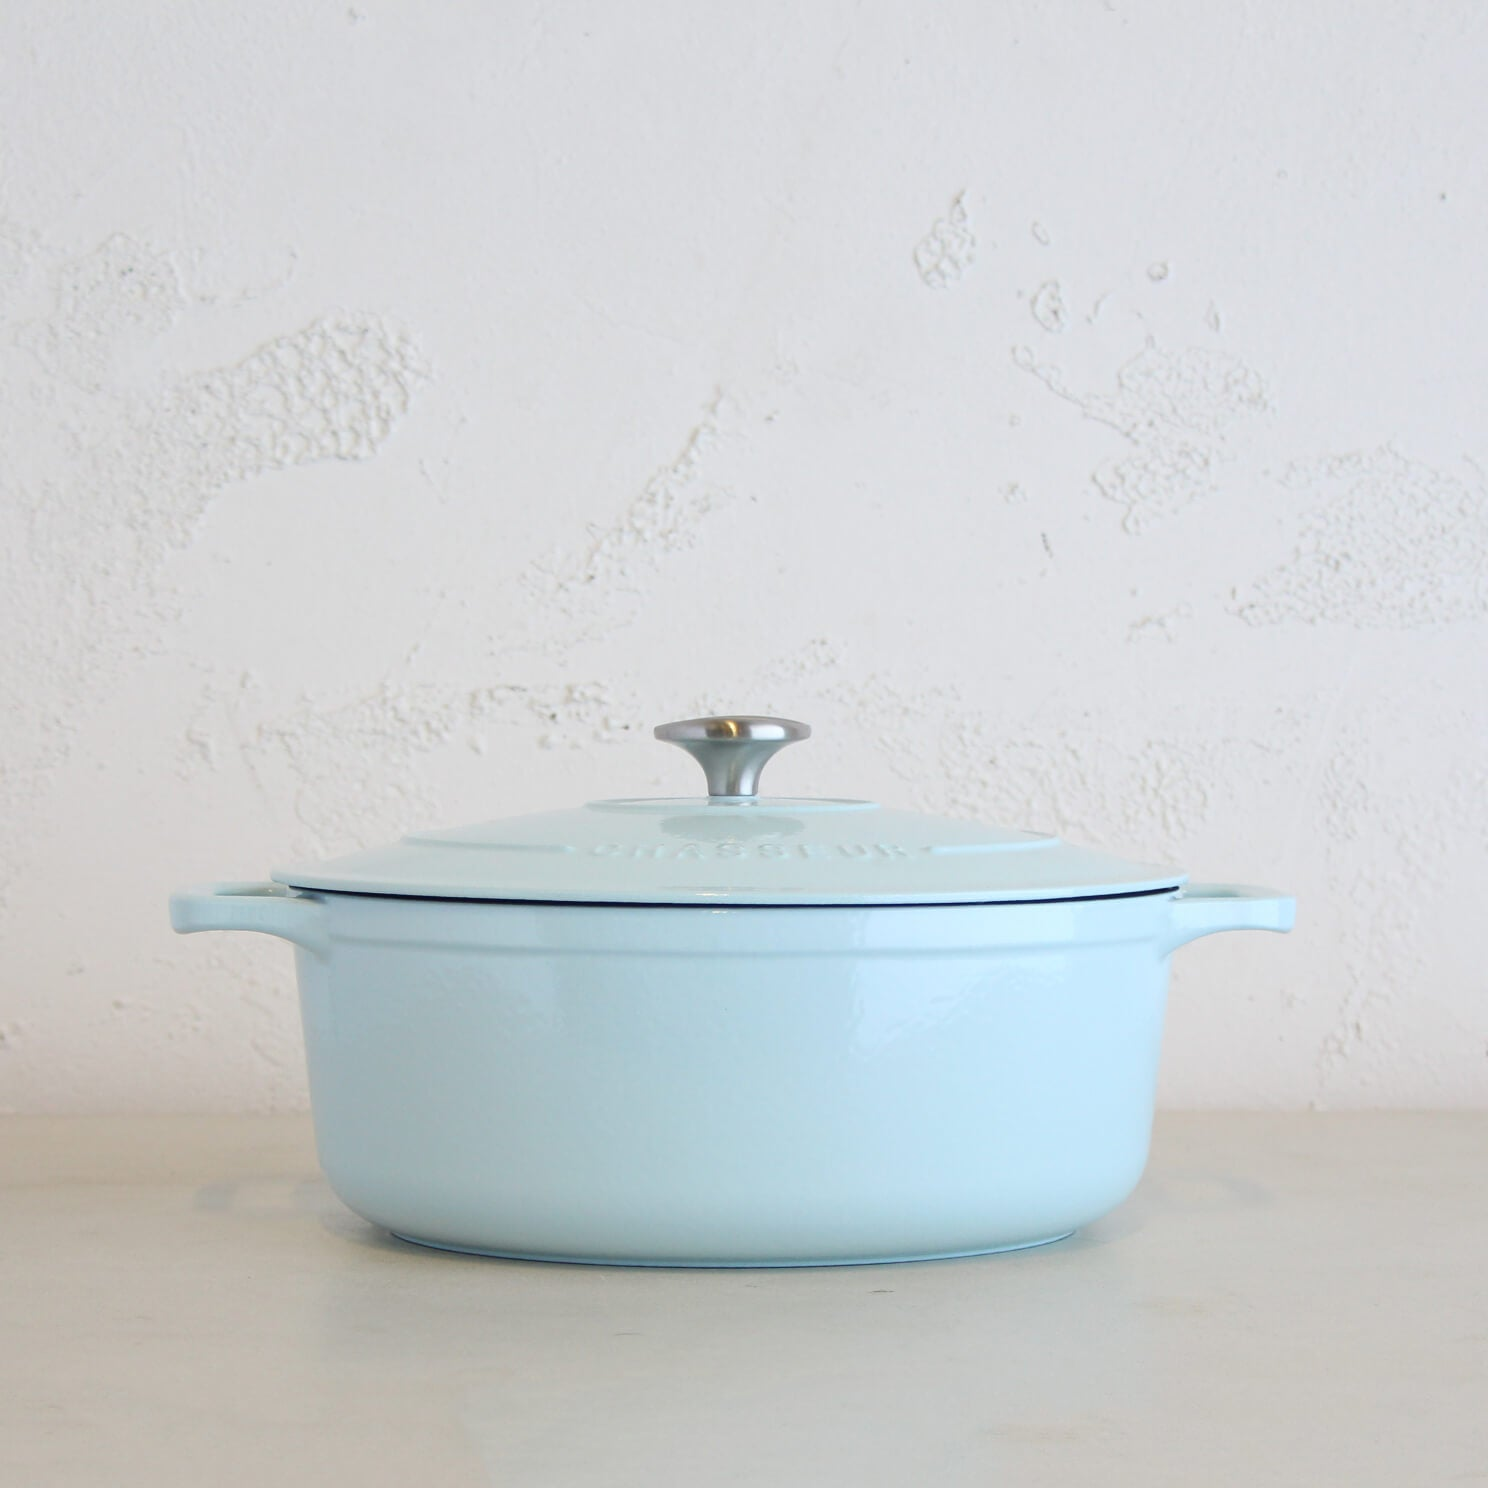 CHASSEUR  |  OVAL FRENCH OVEN  |  DUCK EGG BLUE  |   FRENCH ENAMEL COOKWARE